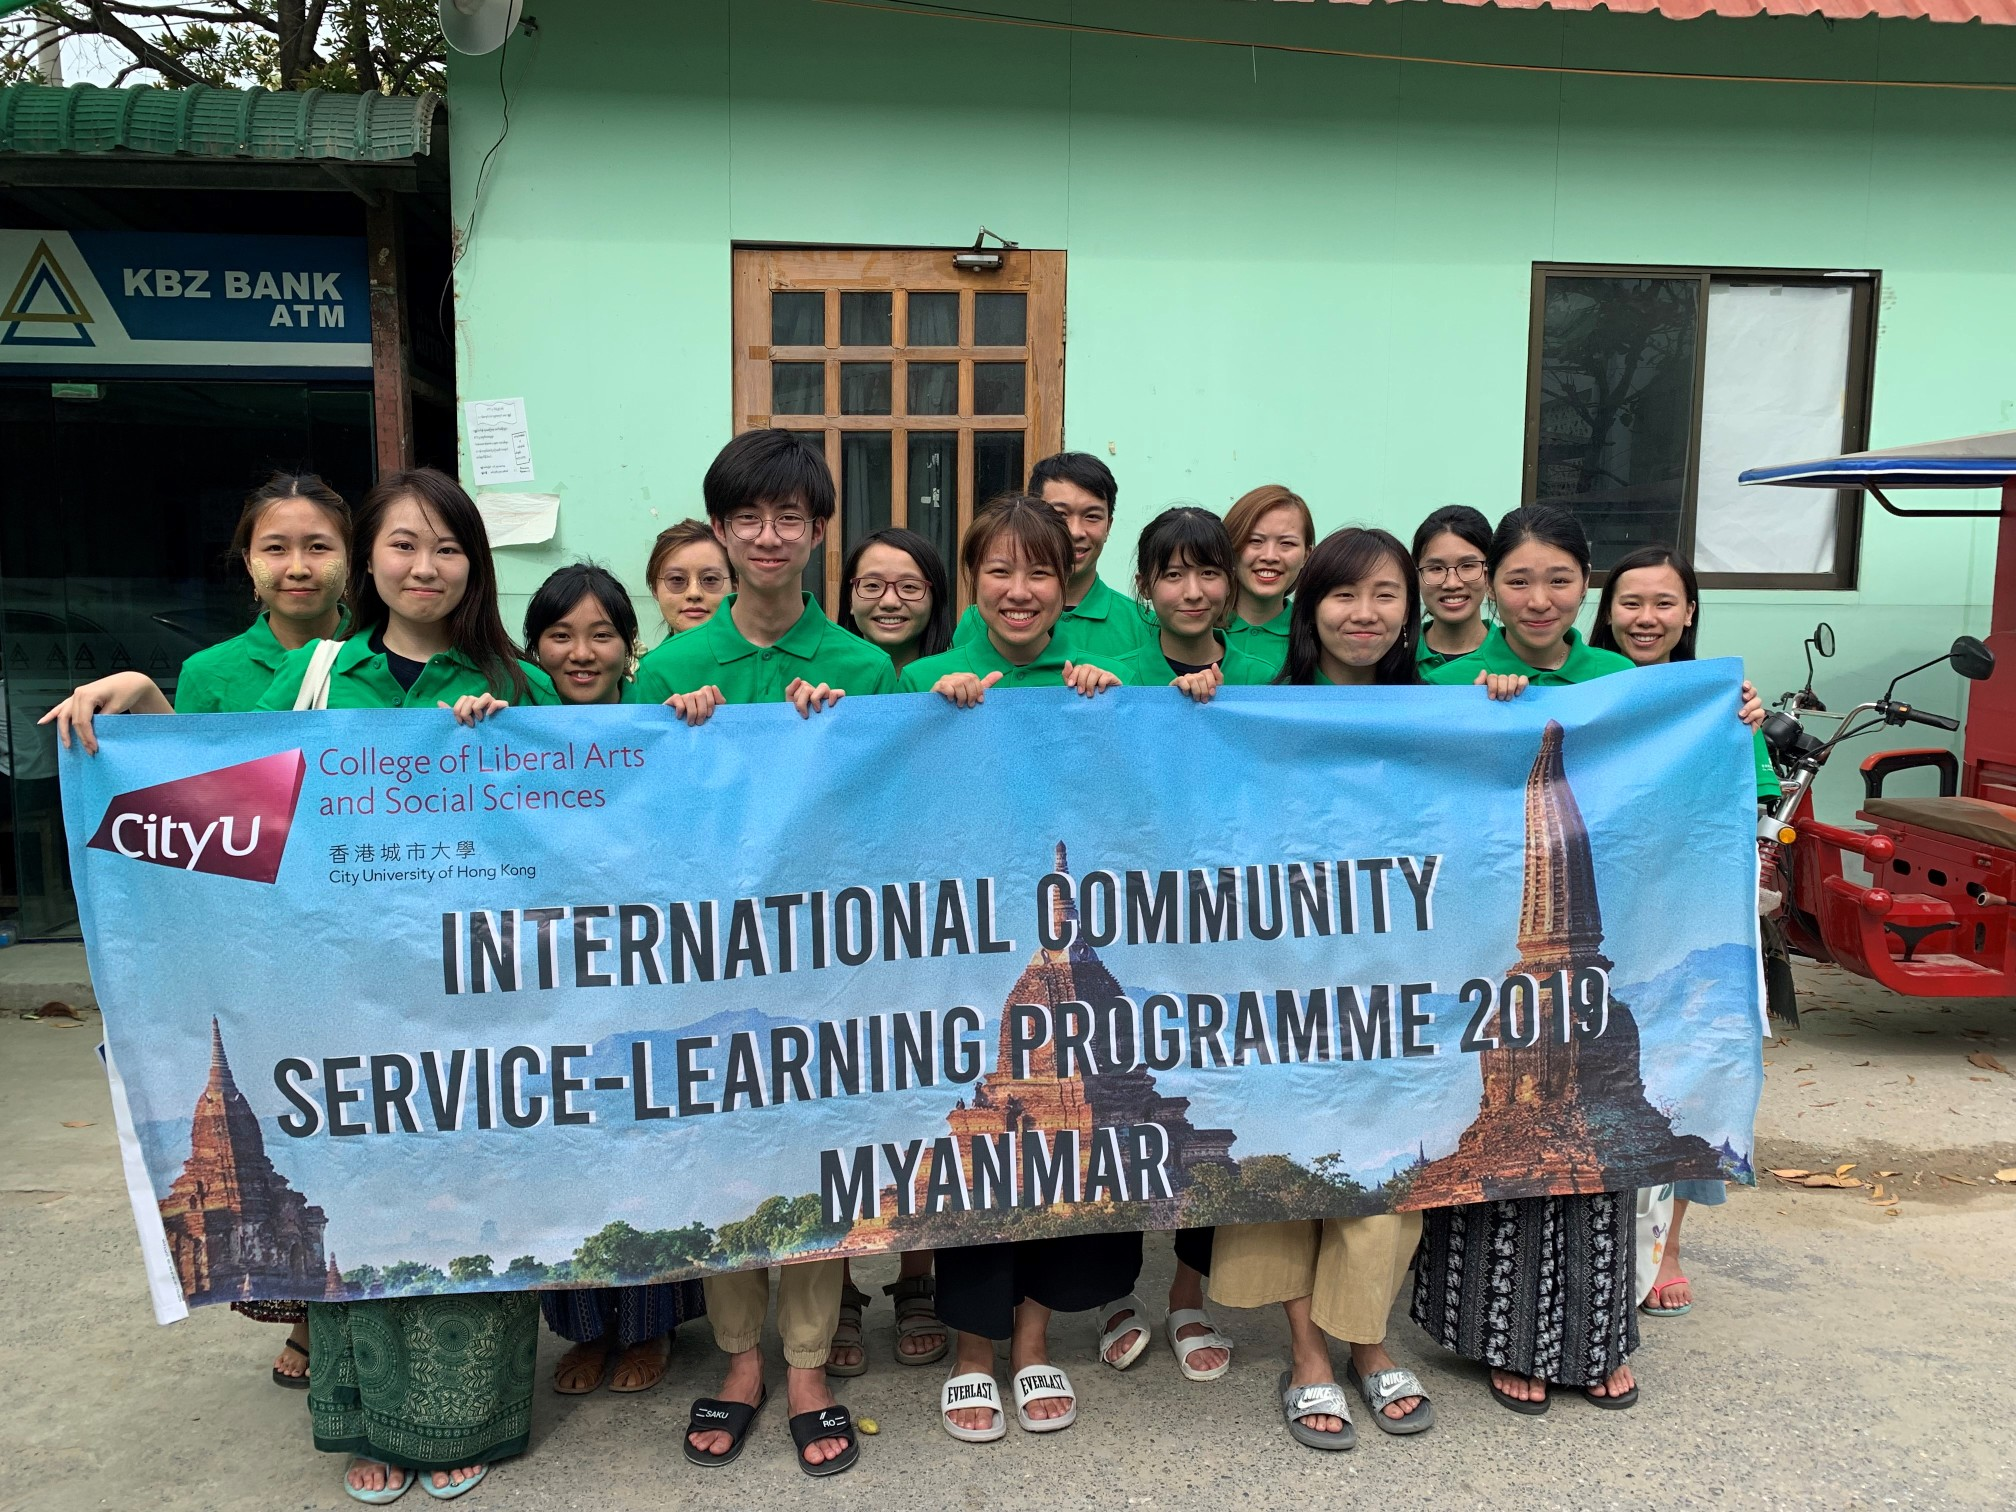 Students Bring Home New Discoveries and Treasured Experiences from Service Learning Internship in Myanmar